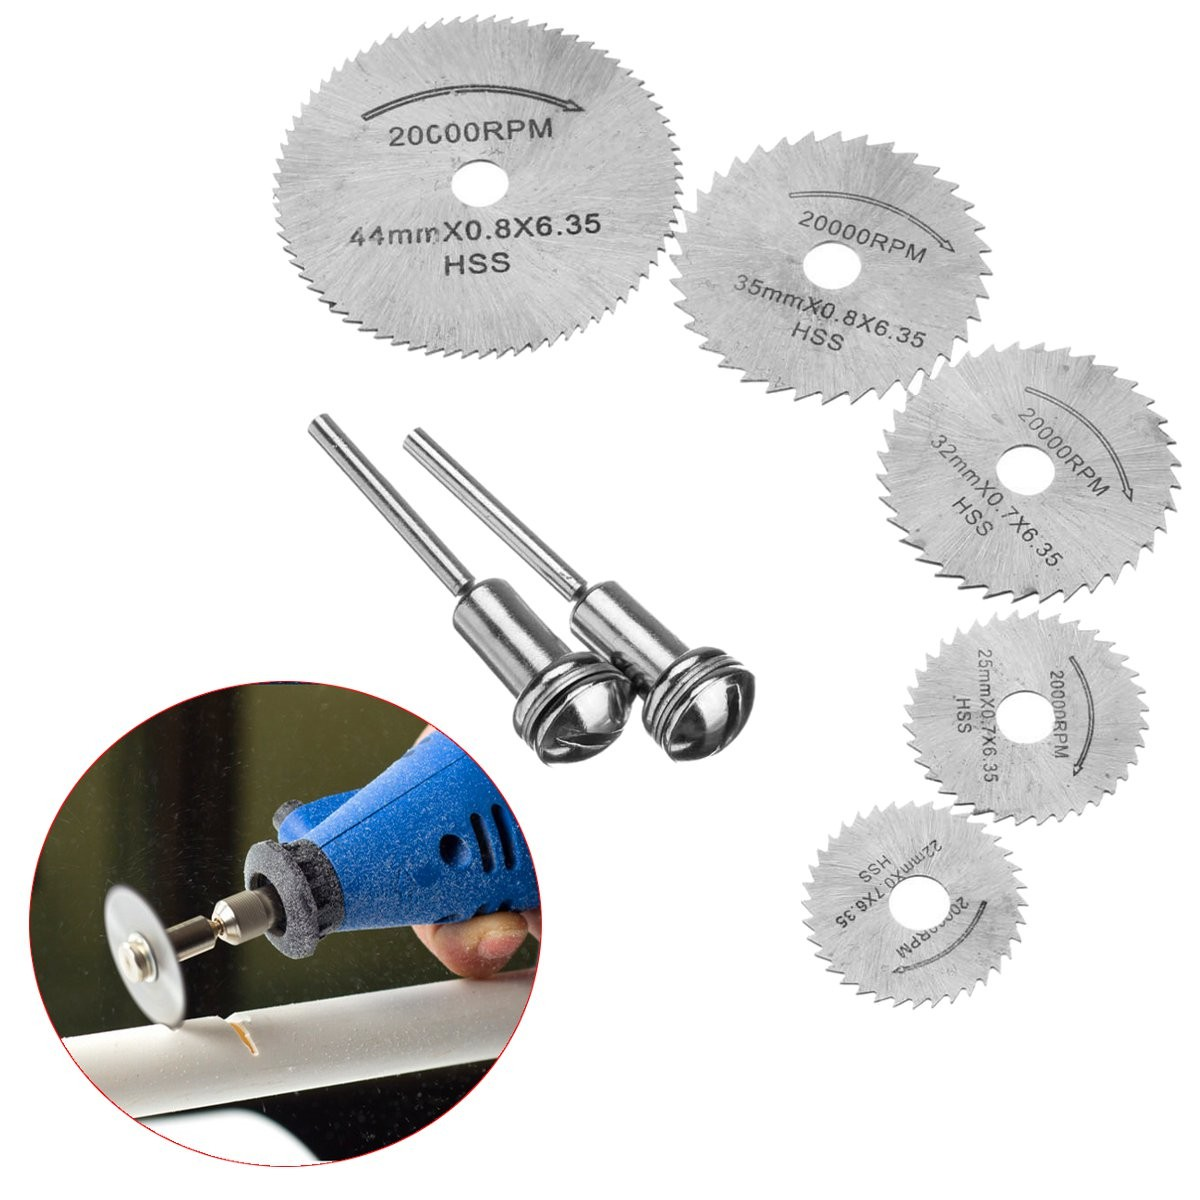 HSS Circular Wood Cutting Saw Blade Discs With 1 Mandrel For Dremel Rotary Tool For Dremel Metal Cutter Blades